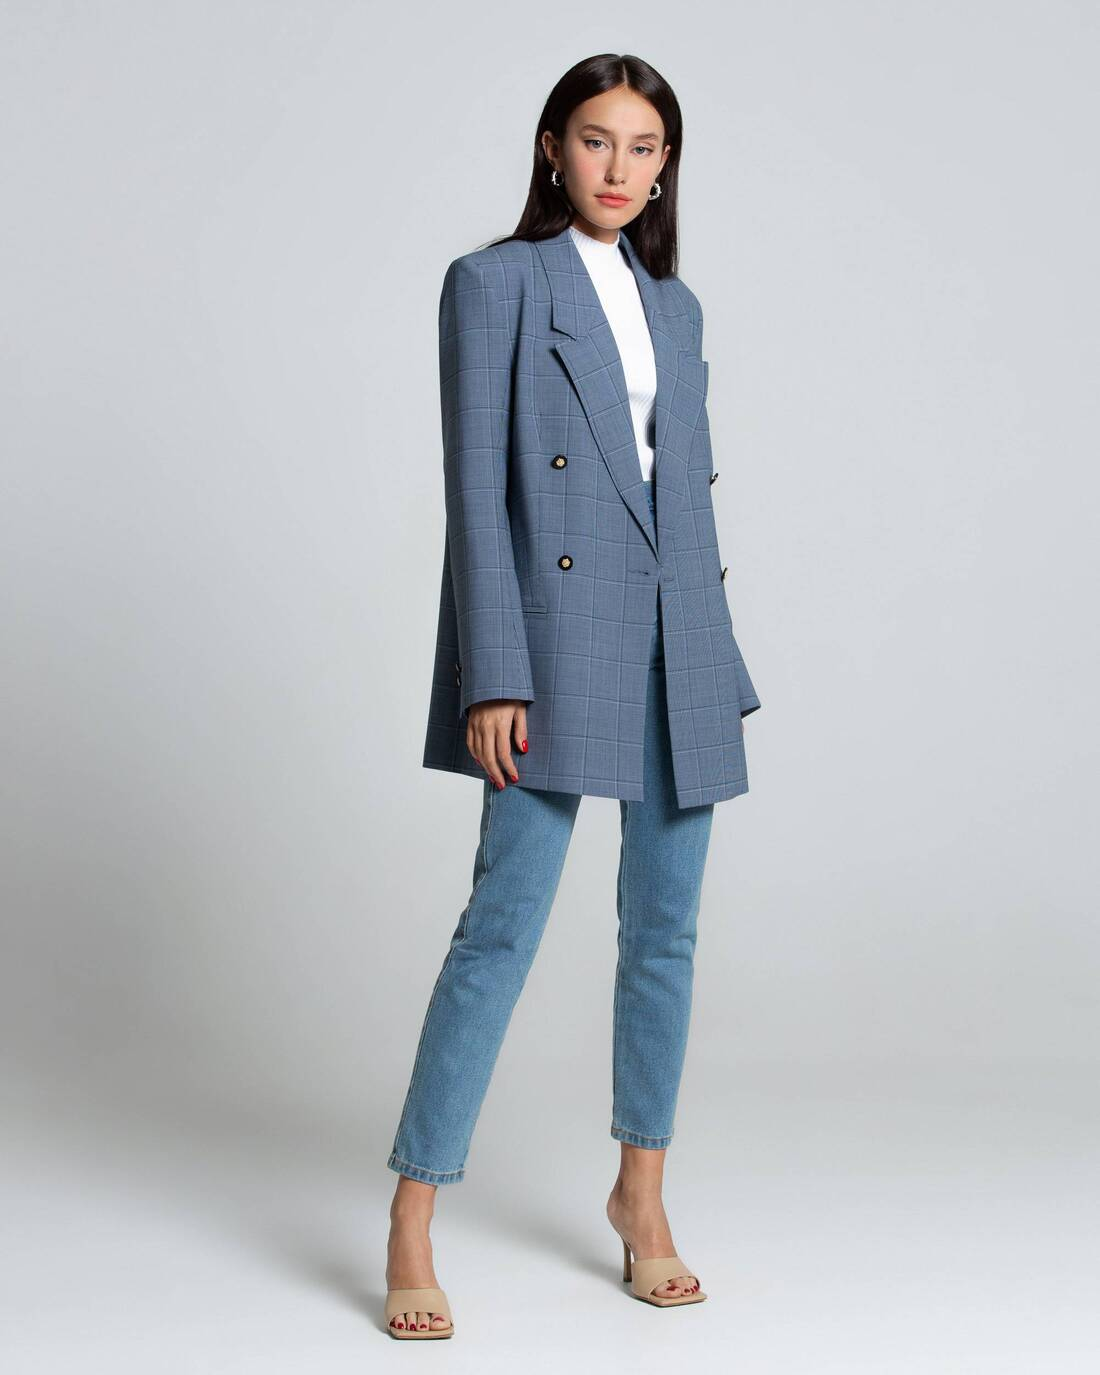 Elongated costume jacket with buttons